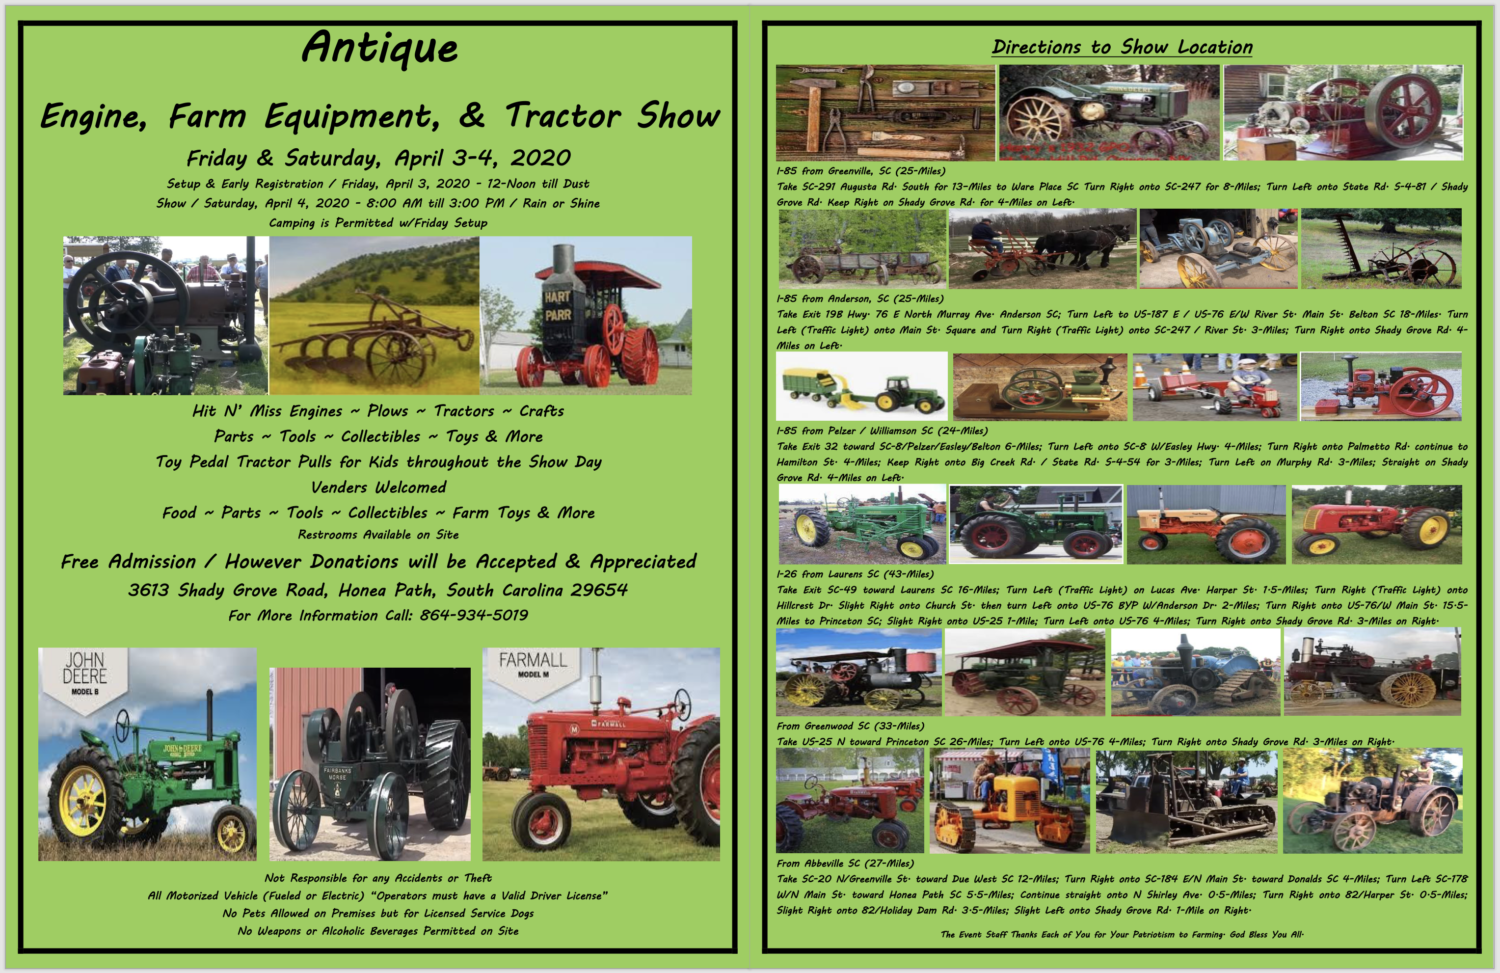 SC - Antique Engine, Farm Equipment & Tractor Show